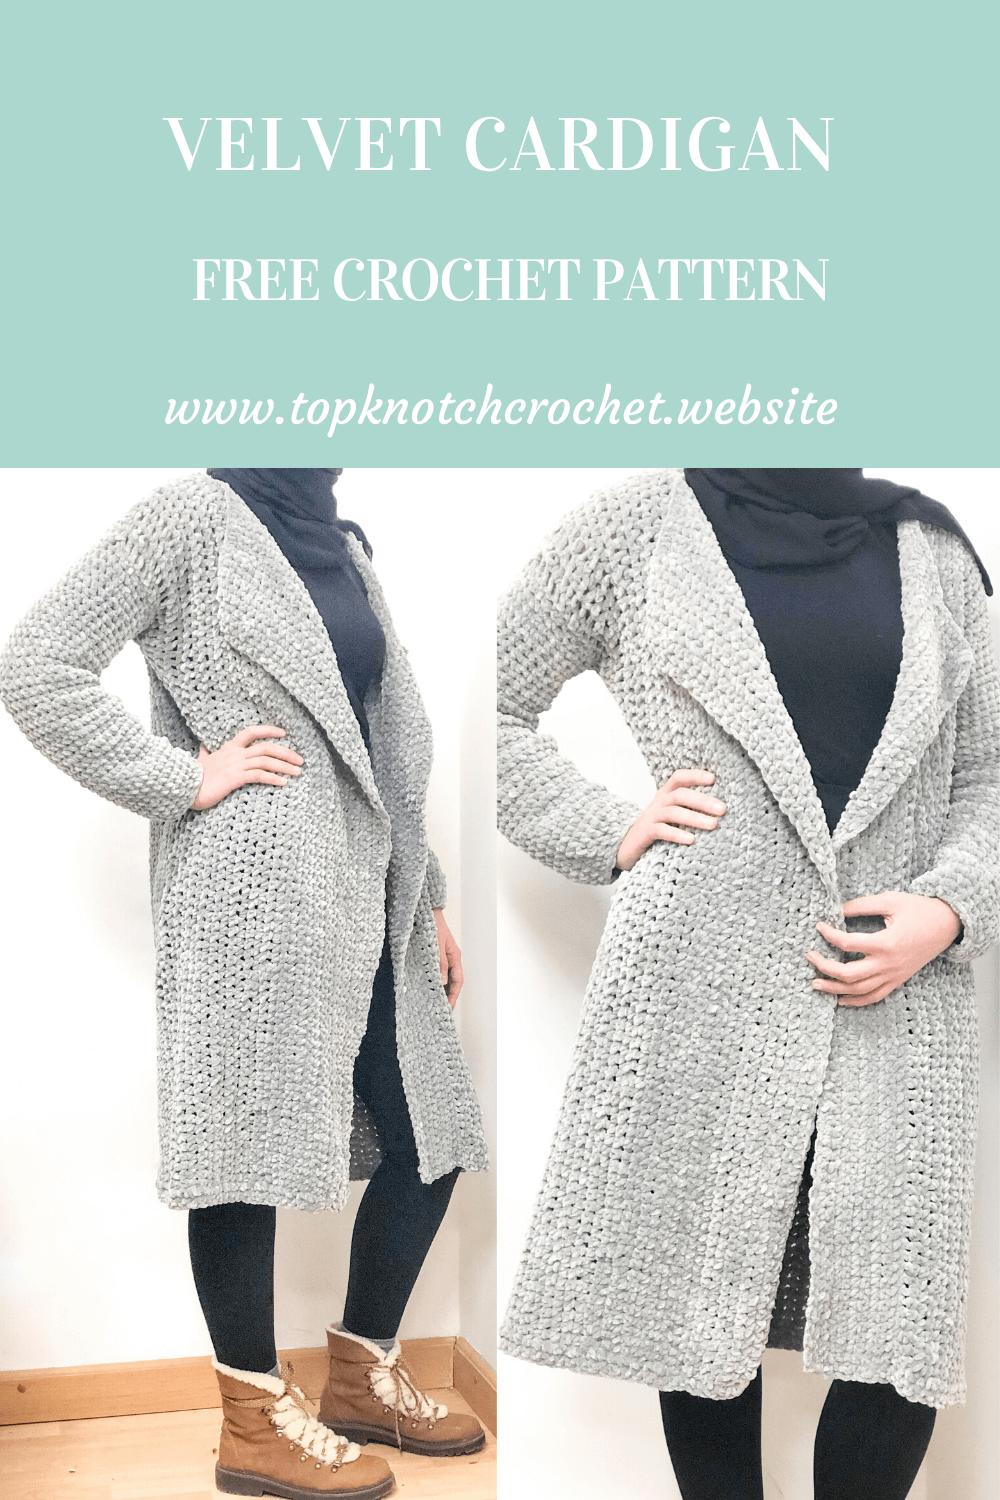 Oversized Crochet Cardigan with Cozy Velvet Yarn